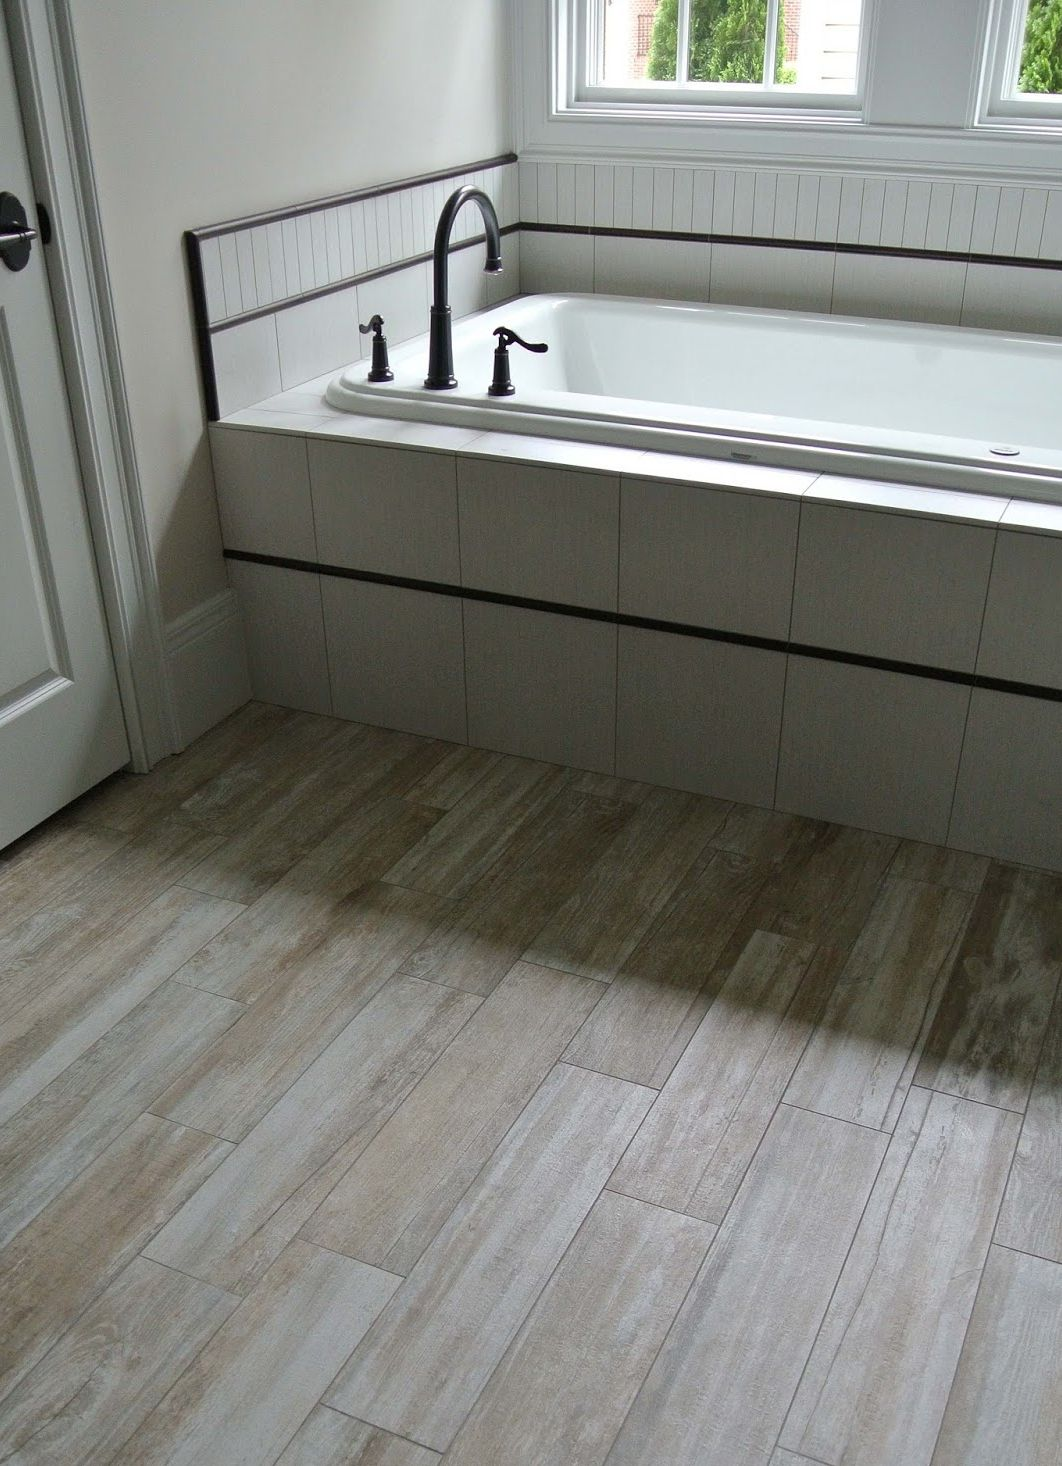 Bathroom-flooring-Ideas-With-Various-Materials-and-Styles-in-addition-to-bathroom-floor-tiles-combined-with-some-decorative-accessories-for-your-Bathroom-design-145